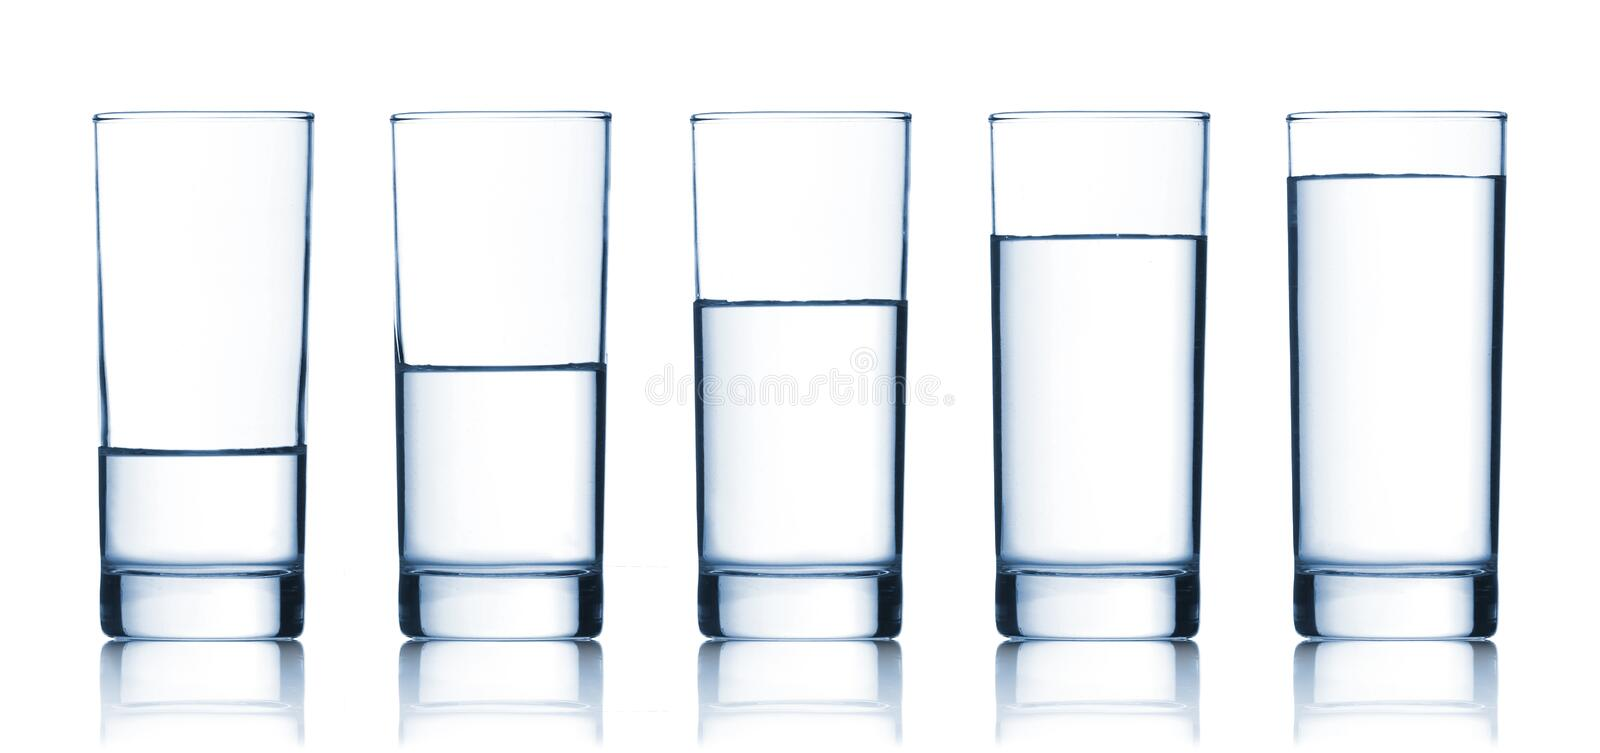 Set of glasses filled with water royalty free stock image